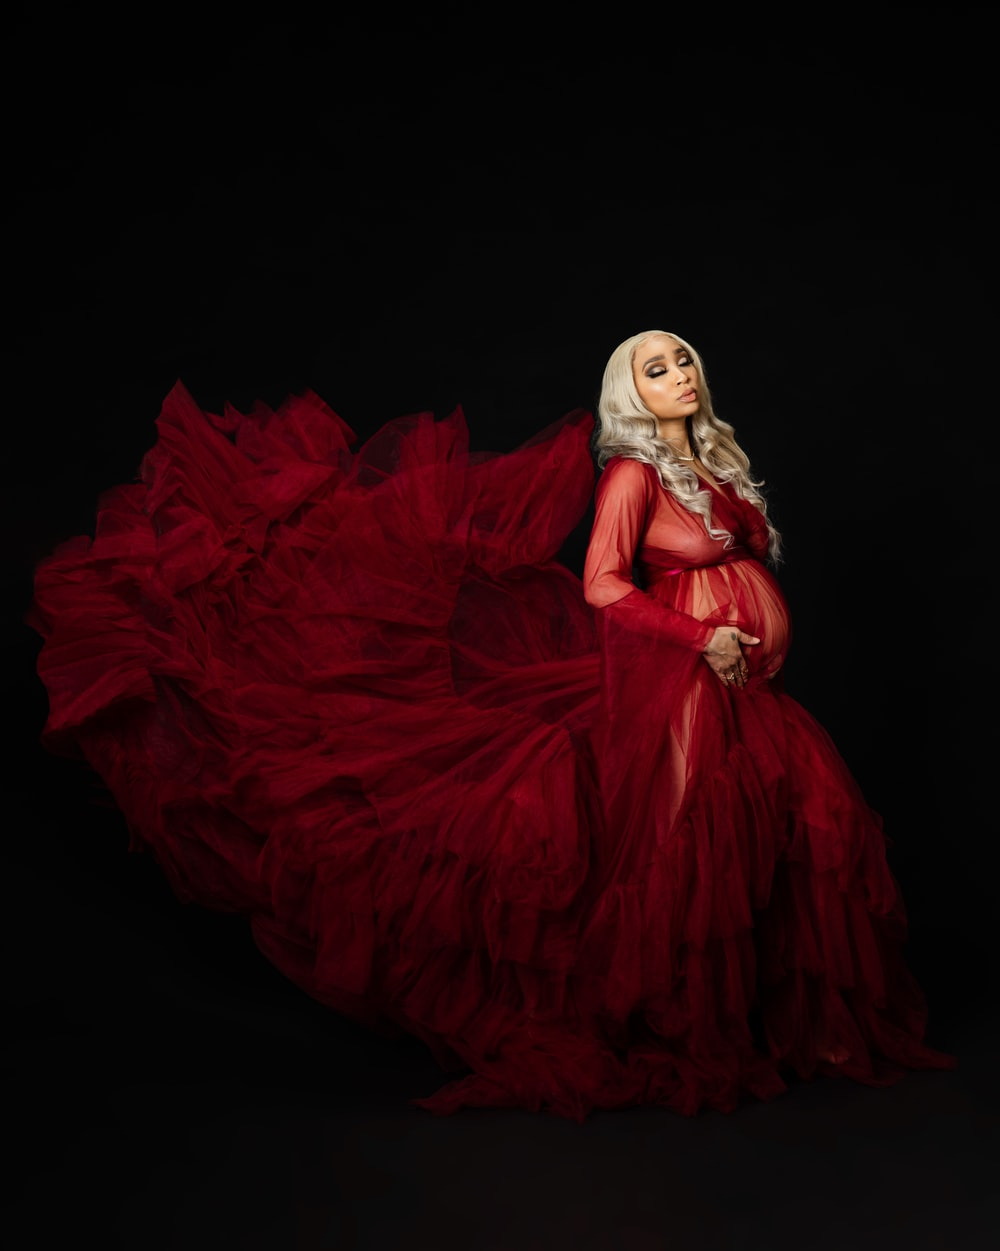 woman in red dress with white hair